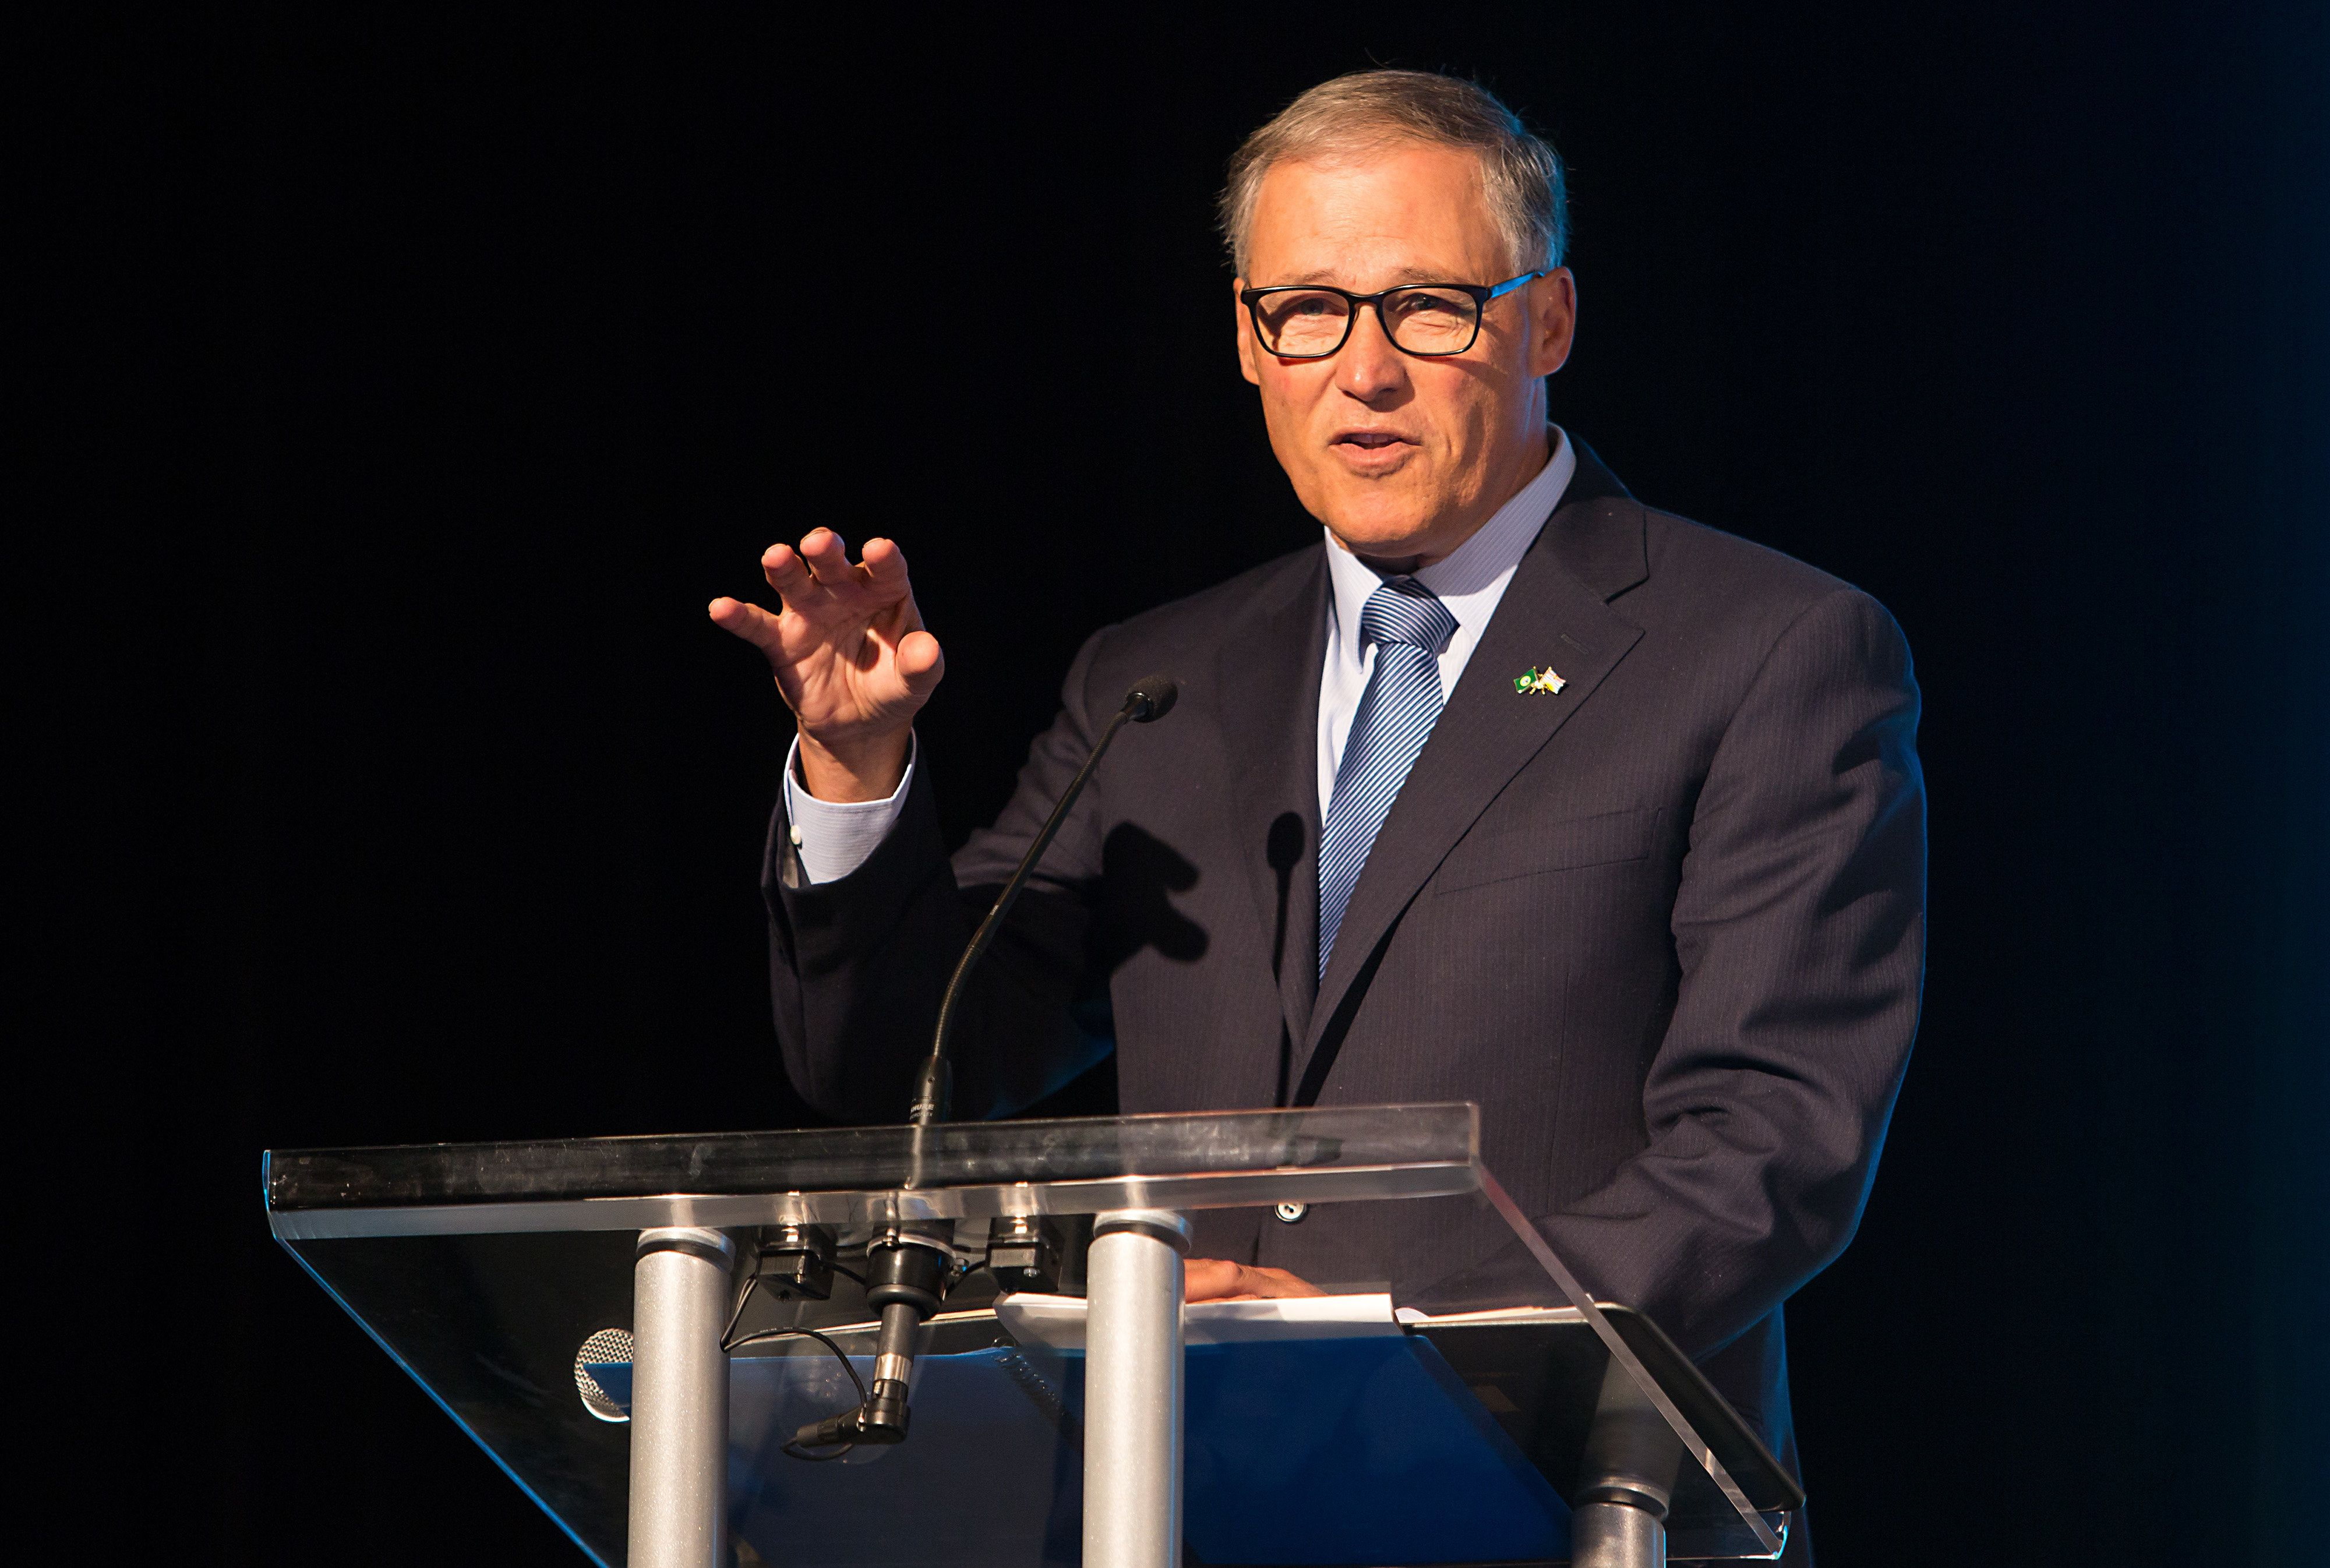 Jay Inslee, governor of Washington, speaks during the Emerging Cascadia Innovation Corridor Conference in Vancouver, British Columbia, Canada, on Tuesday, Sept. 20, 2016. The conference focused on the creation of a new global hub for innovation and economic development. Photographer: Ben Nelms/Bloomberg via Getty Images